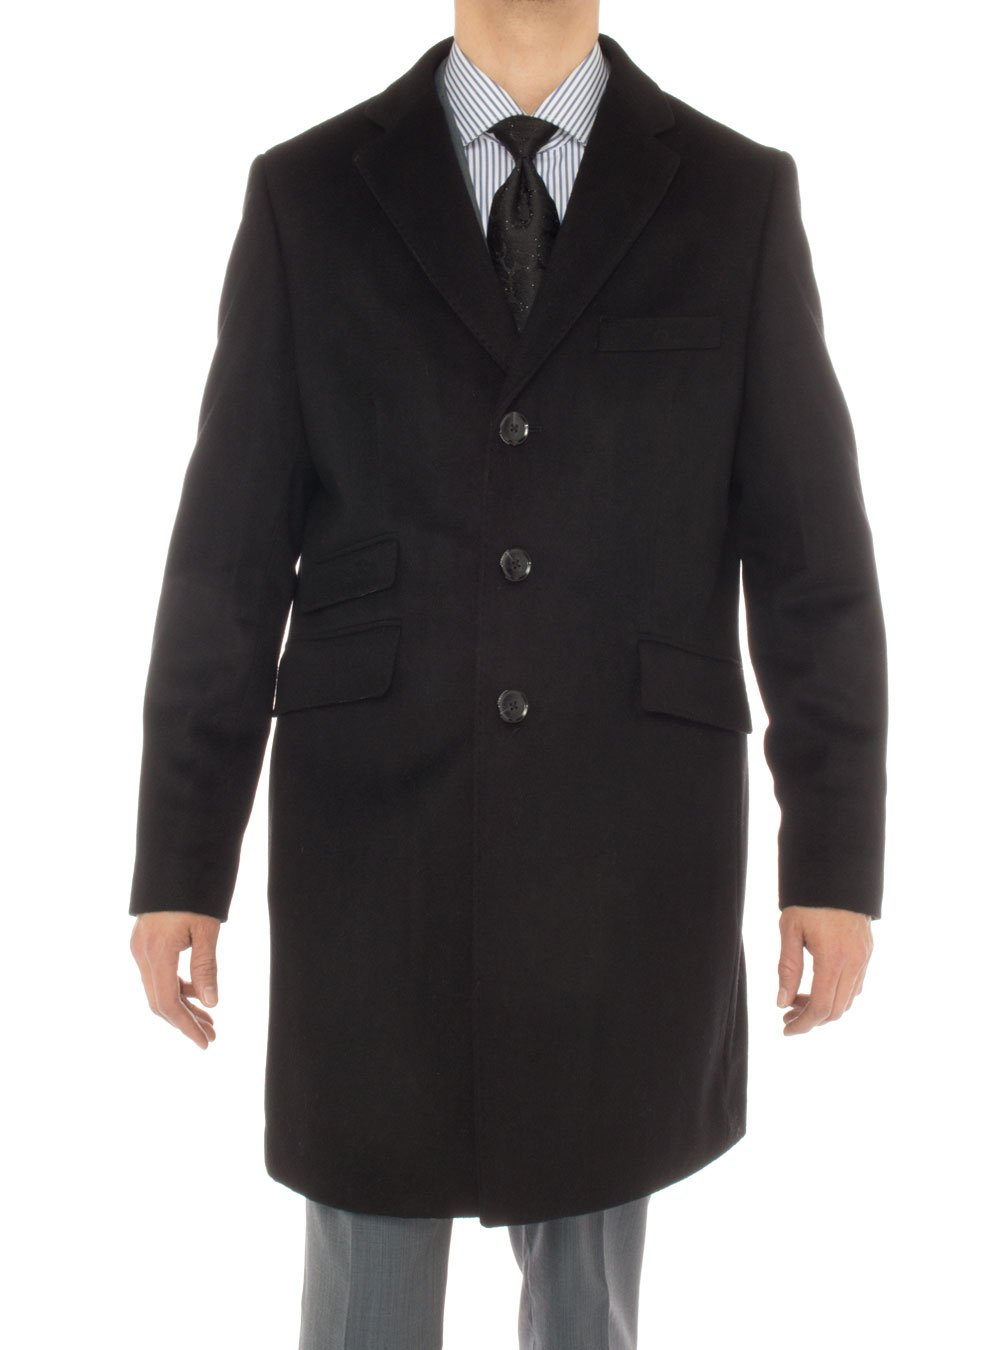 Luciano Natazzi Men's Cashmere Topcoat Modern Ticket Pocket Trench Coat Overcoat (44 US - 54 EU, Black) by Luciano Natazzi